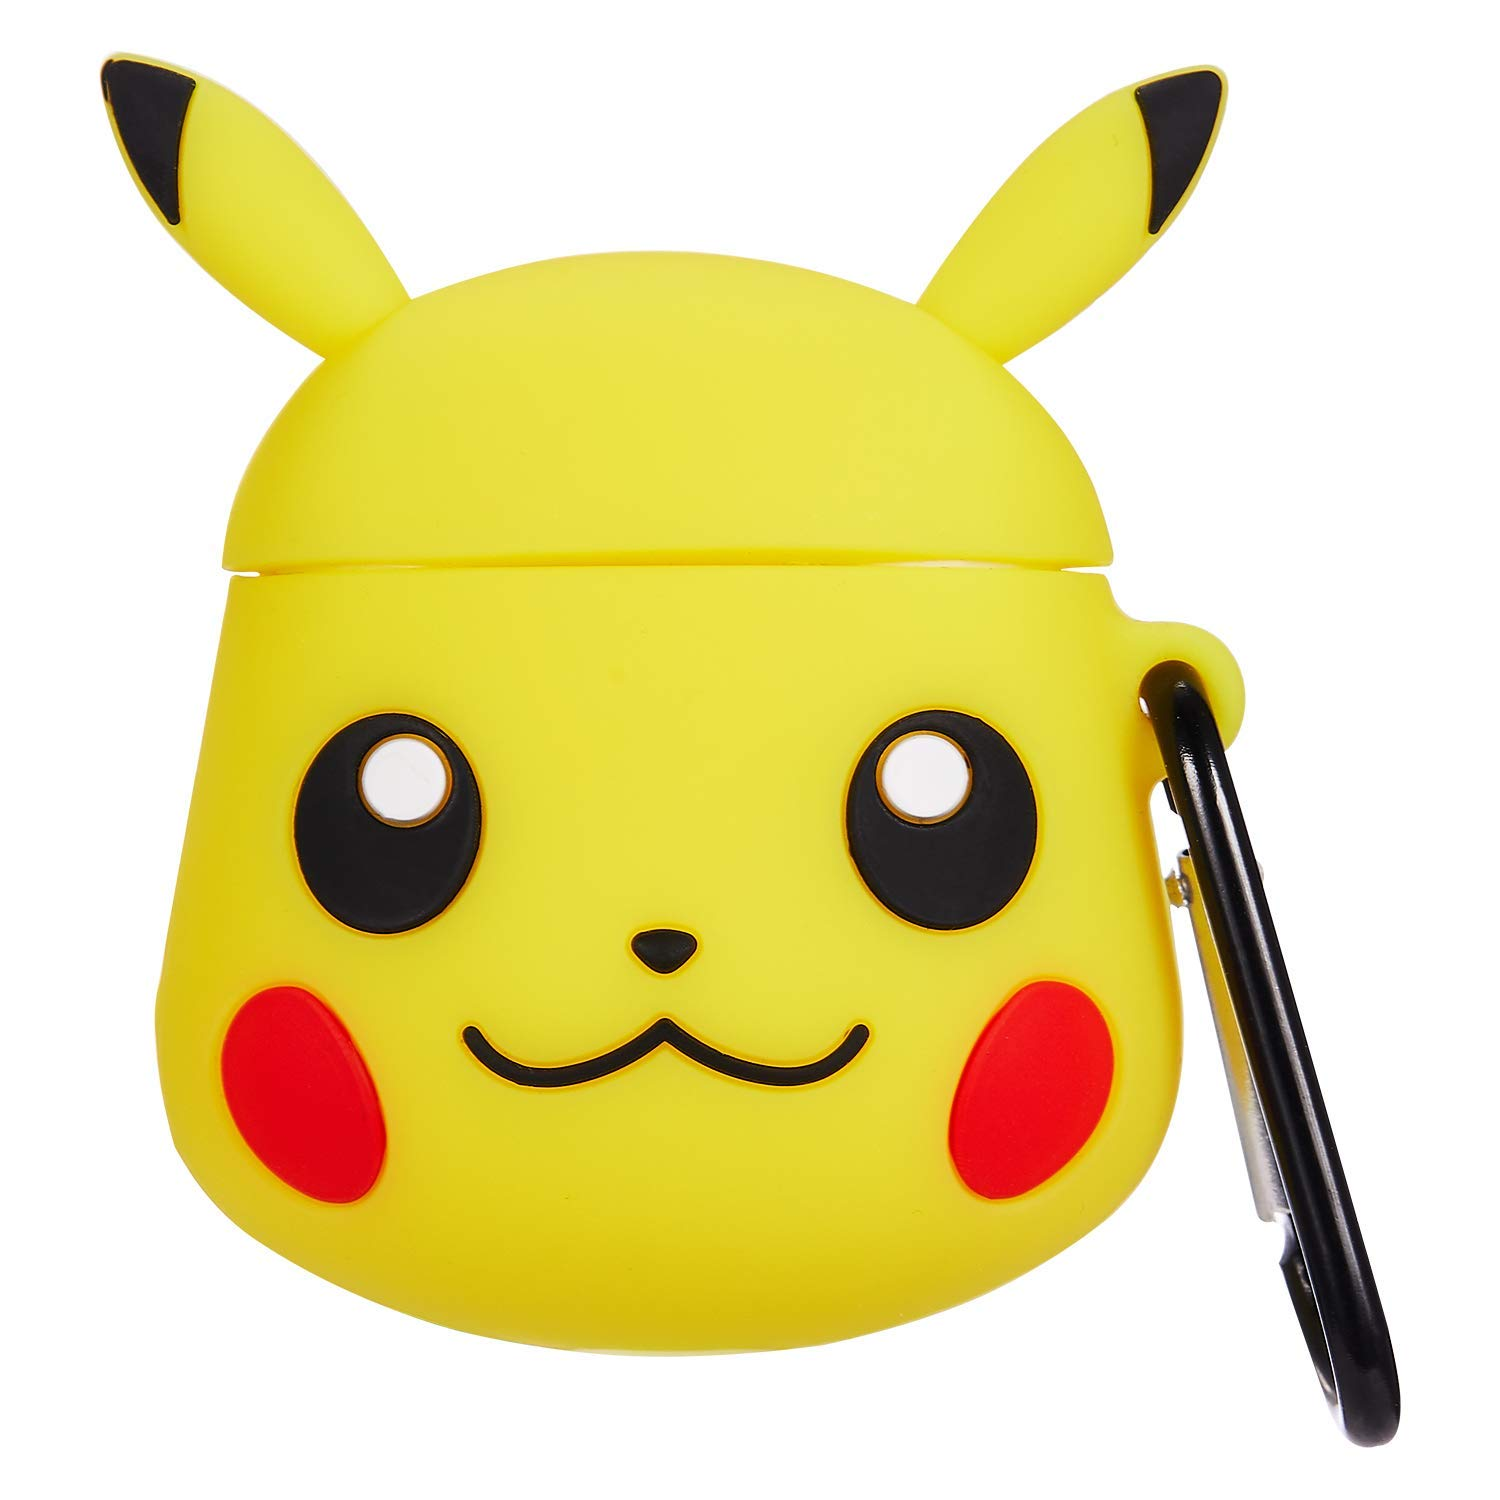 Mulafnxal Compatible with Airpods 1&2 Case,Cute 3D Funny Cartoon Character Silicone Airpod Cover,Kawaii Fun Cool Catalyst Keychain Design Skin,Cases for Girls Kids Teens Boys Air pods(Yellow Pikachu)